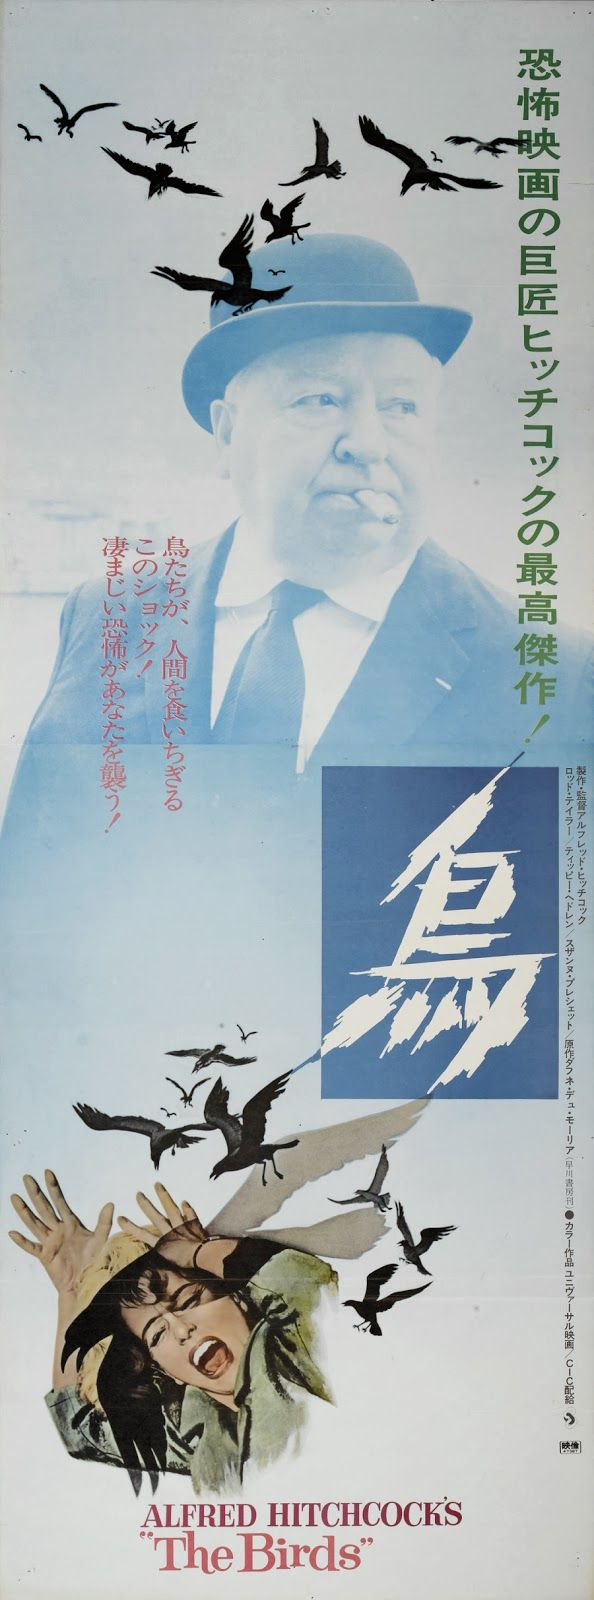 sunglasses shopping 1972 Japanese STB poster for The Birds  1963